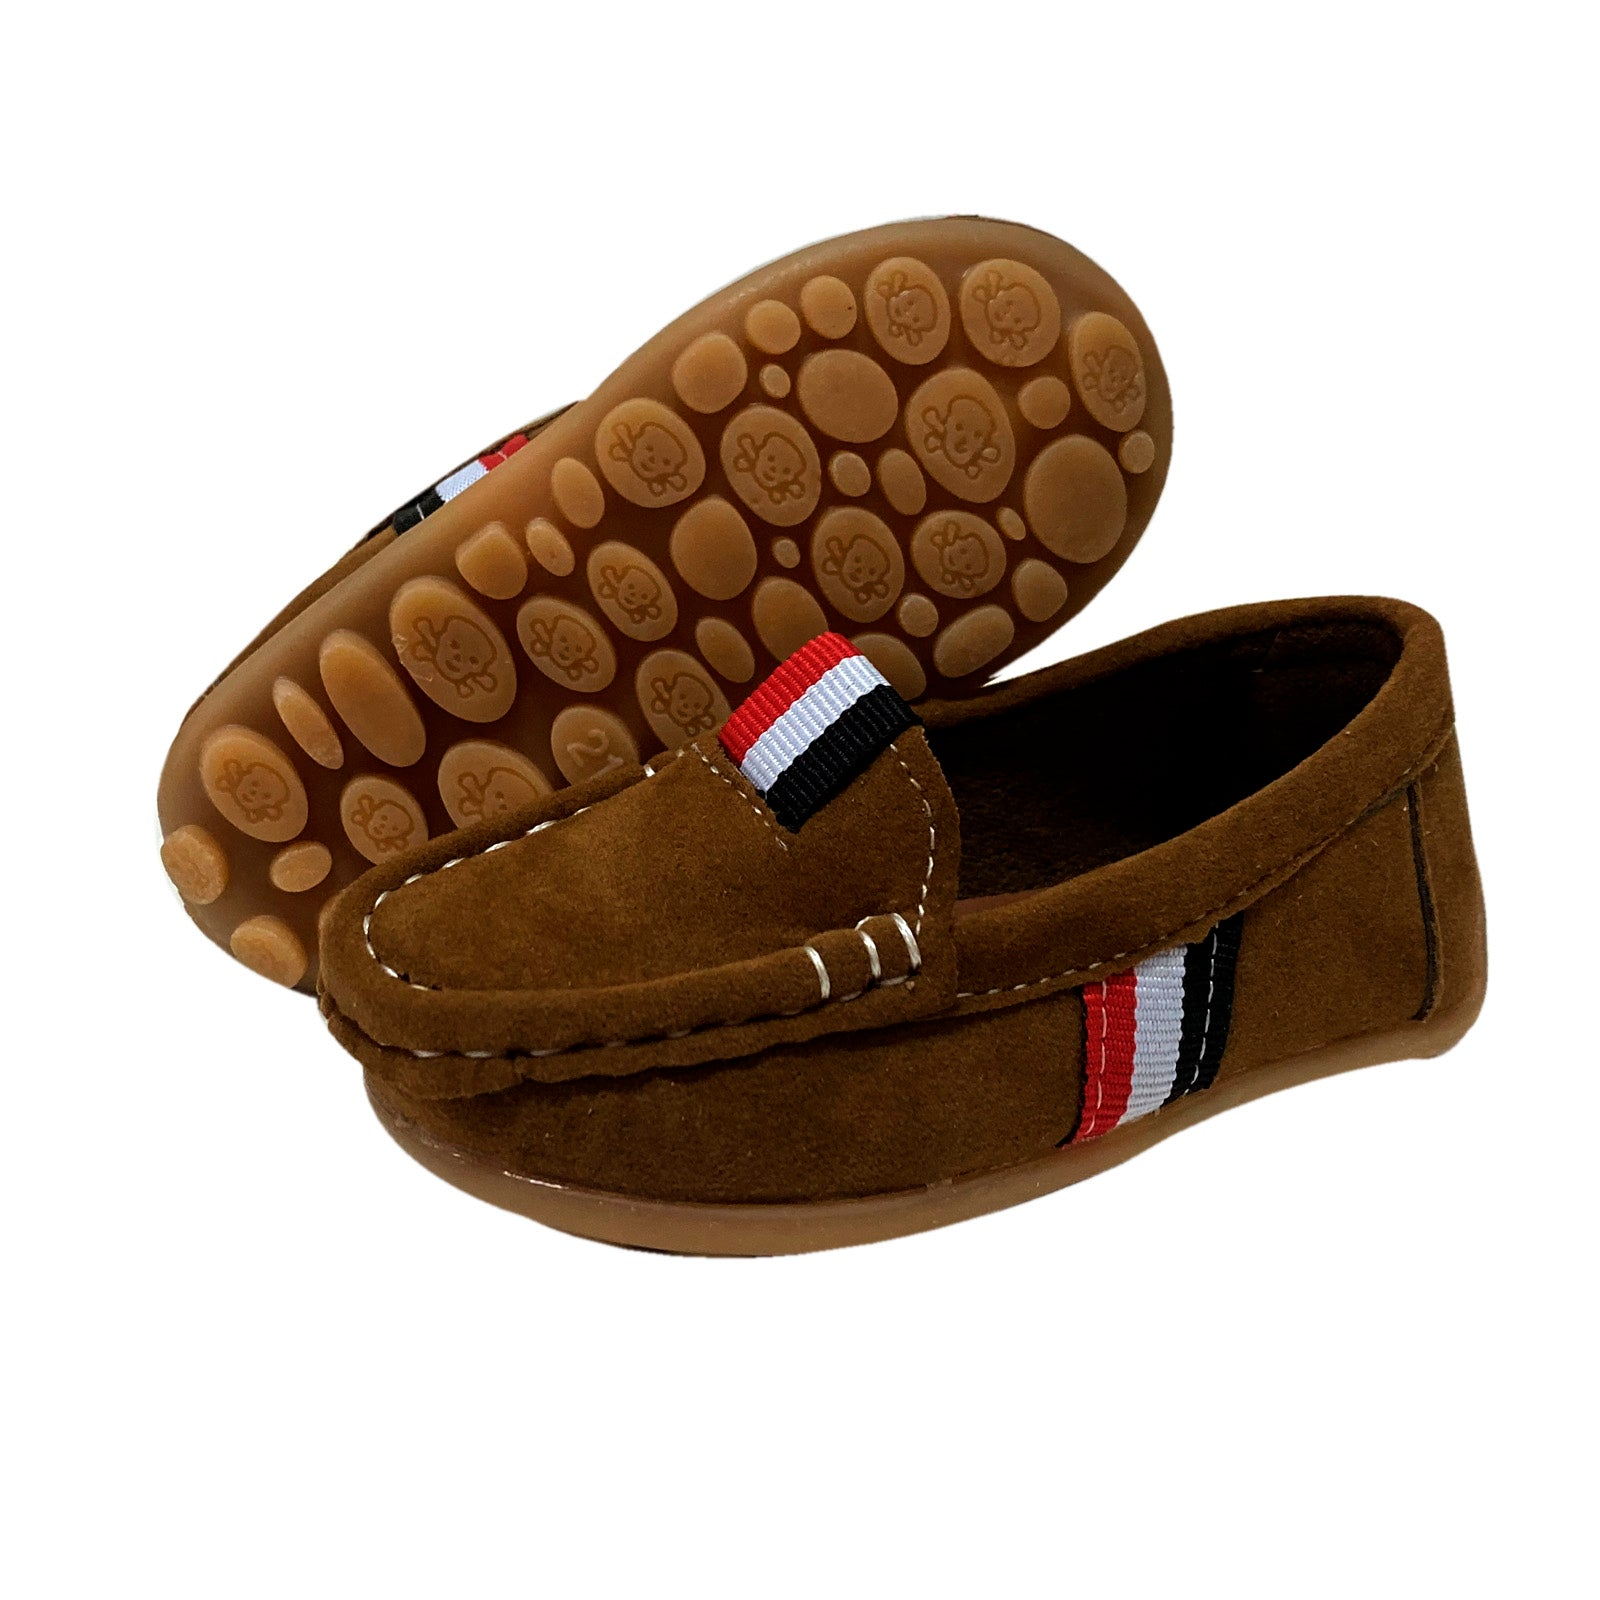 S168 Moccasin Suede-Brown (Special Offer)